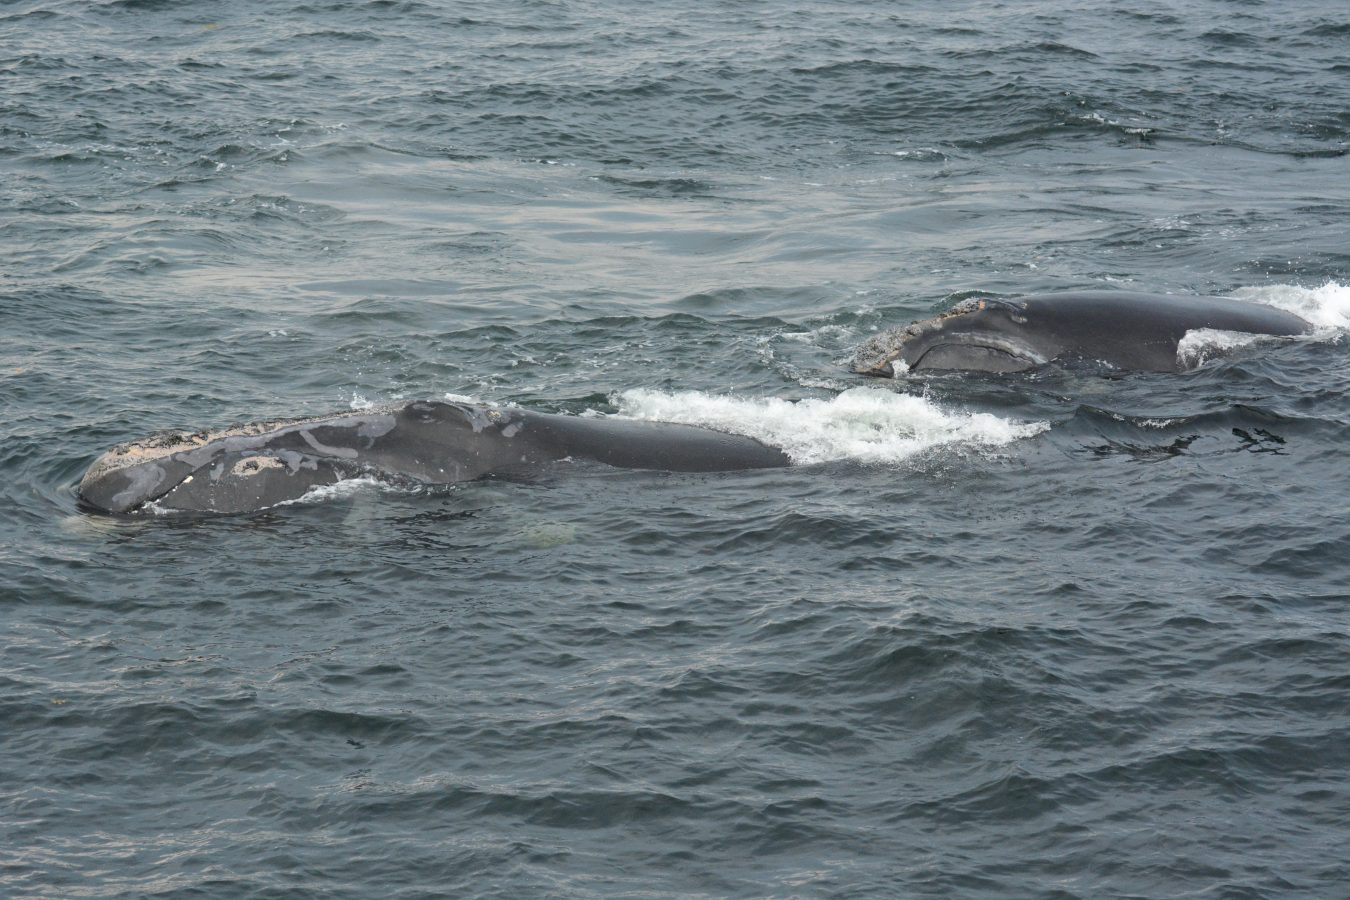 North Atlantic right whale Mom #2791 and her calf.